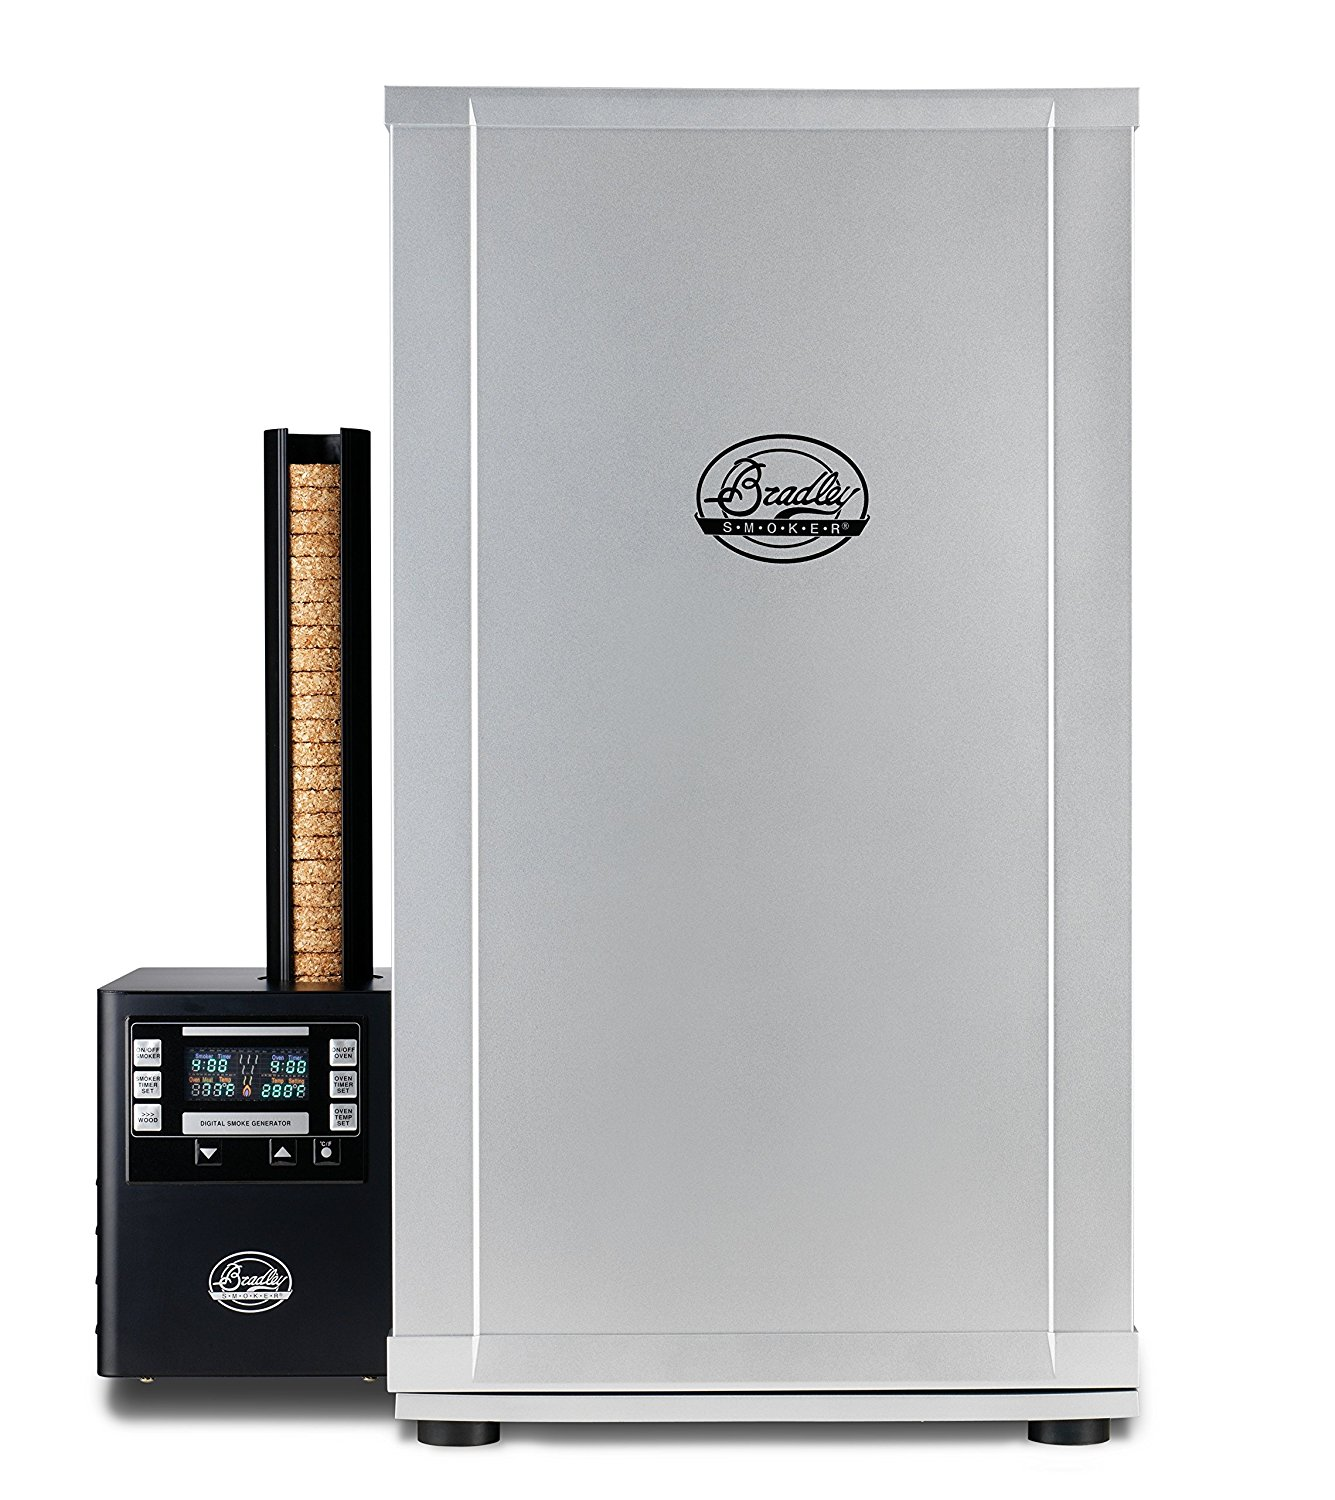 At under $400, The Bradley Digital could possibly be the best meat smoker available on the market right now.